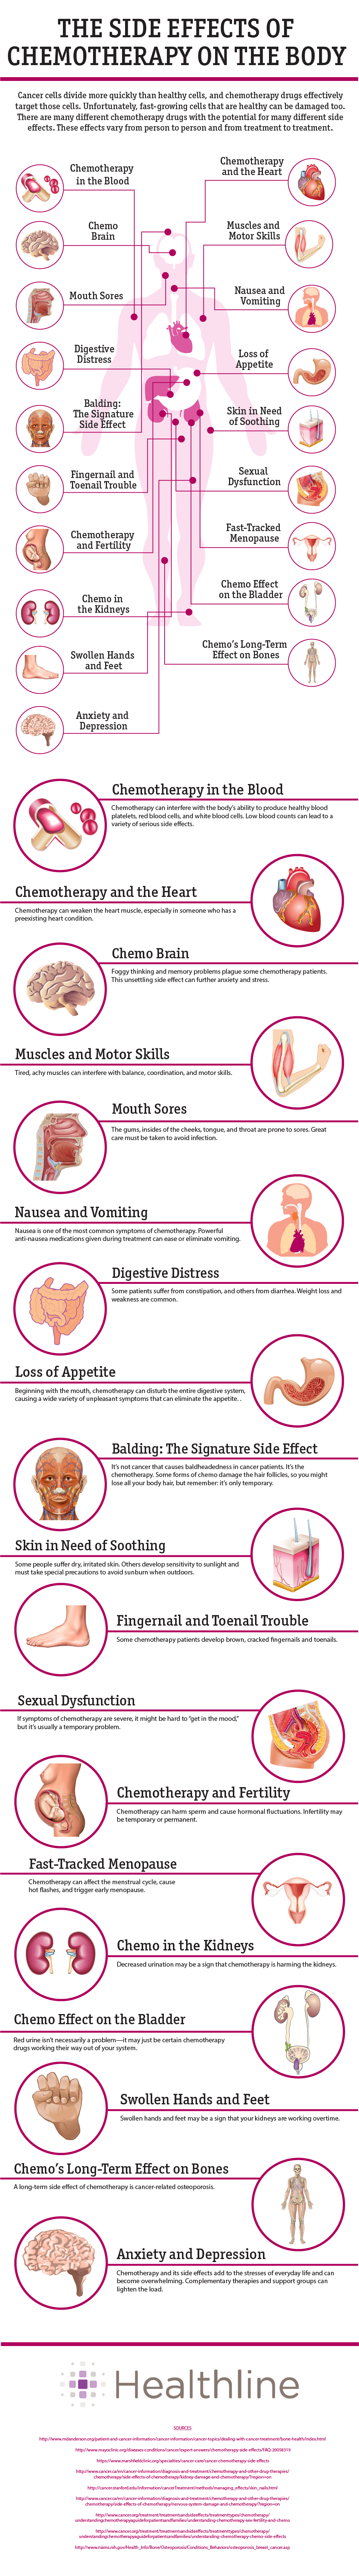 Side Effects Of Chemotherapy For Cancer Infographic